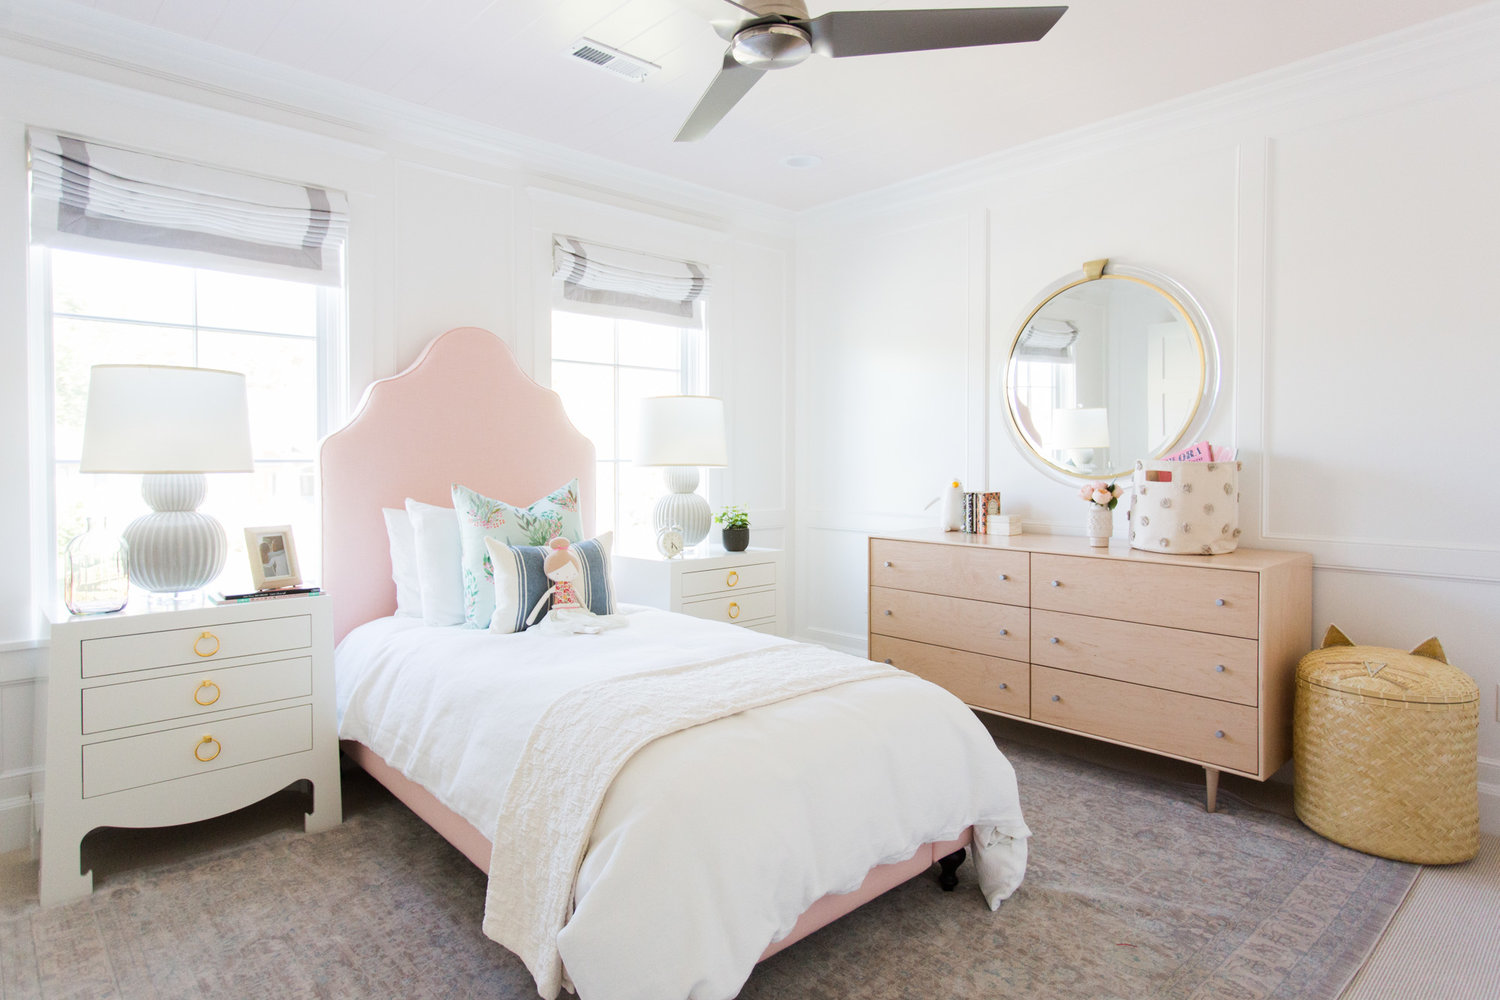 Pink and white bed in child's room